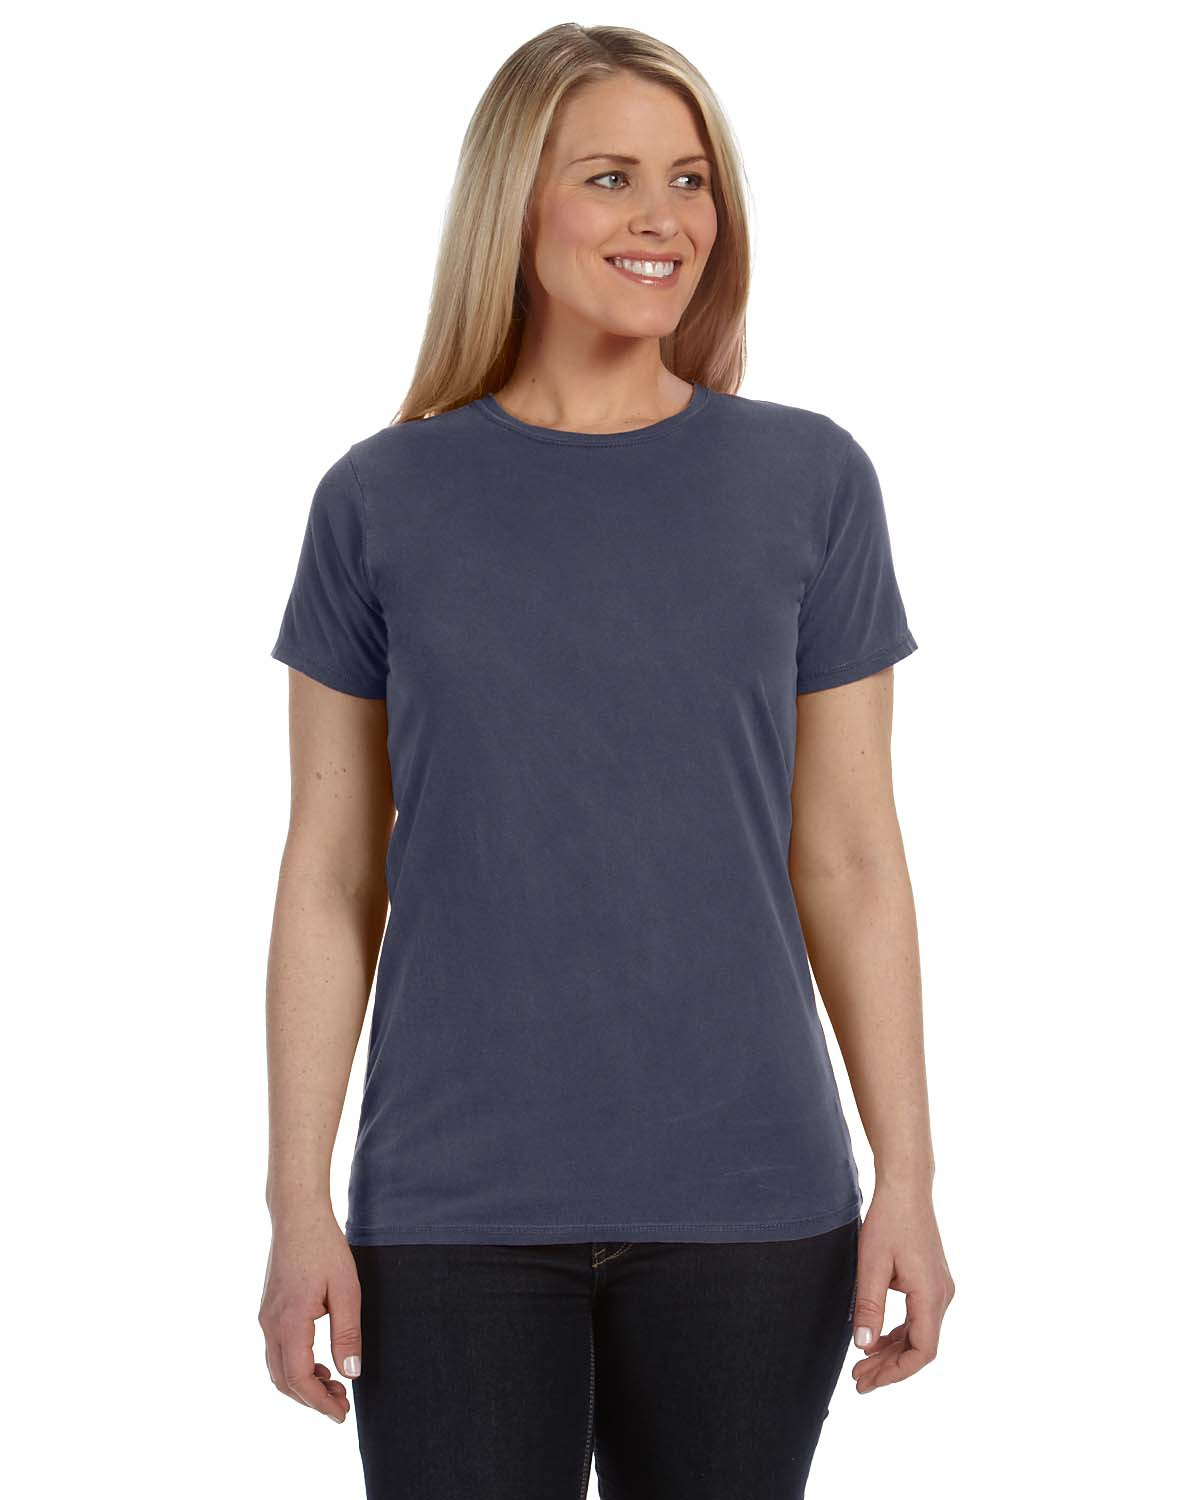 Ladies' Lightweight Ringspun T-Shirt